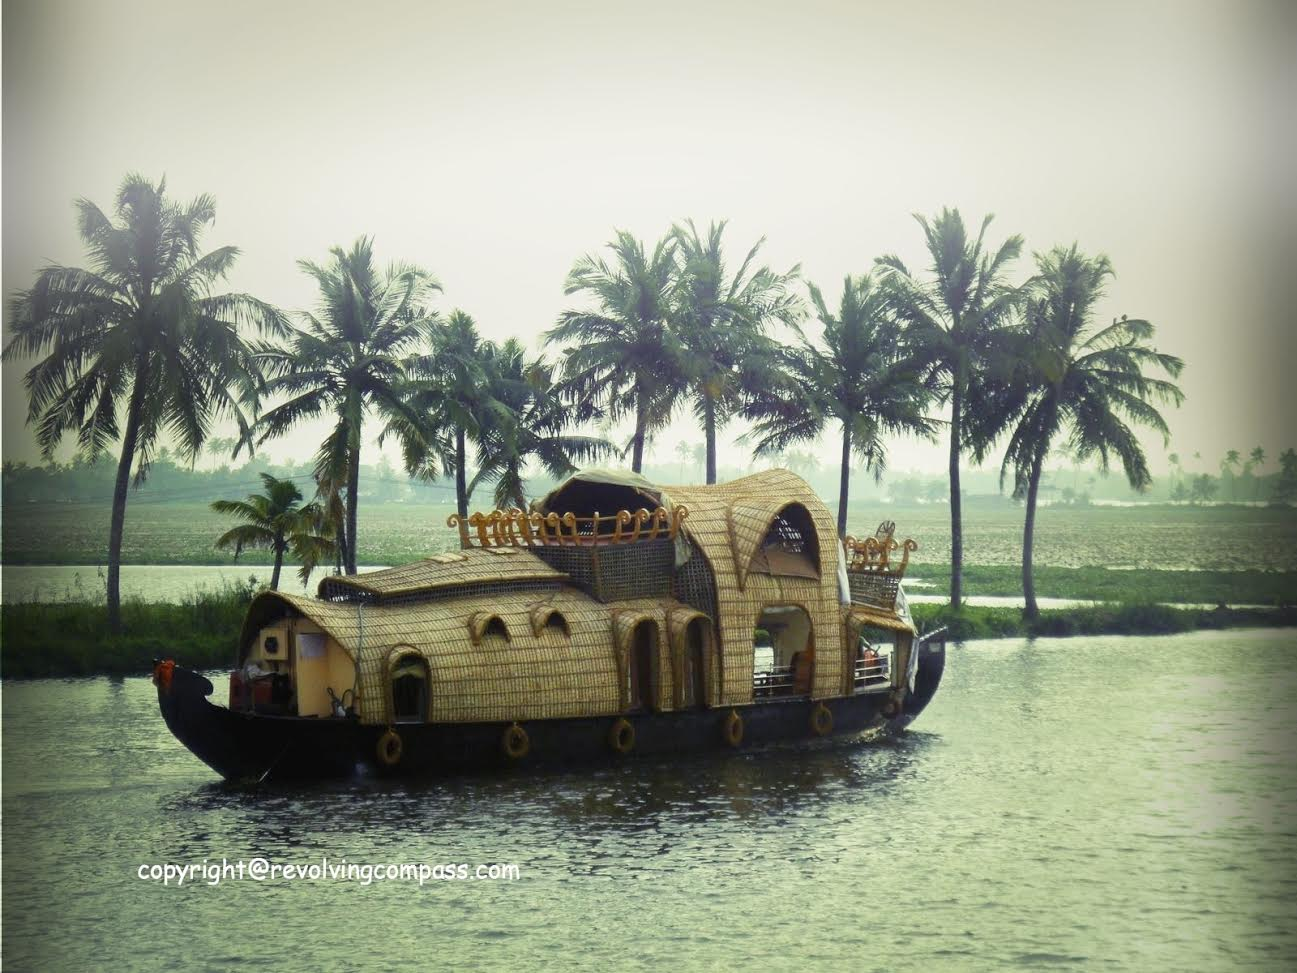 Alleppey - Kerala, India - The best places to see in Kerala - A complete travel guide to Kerala